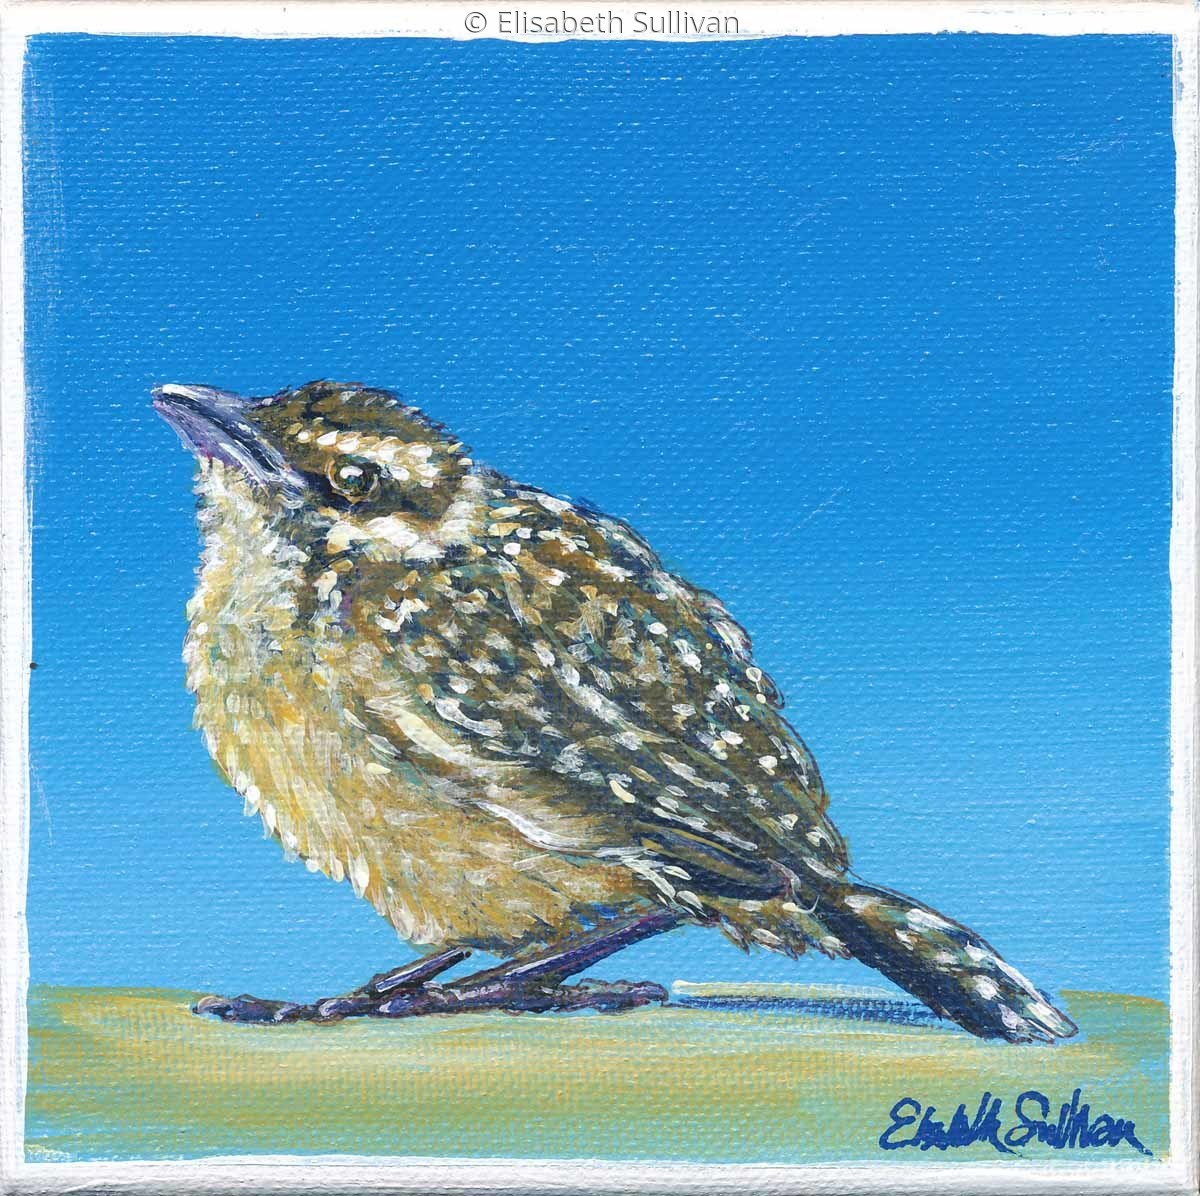 Cactus Wren Chick (large view)